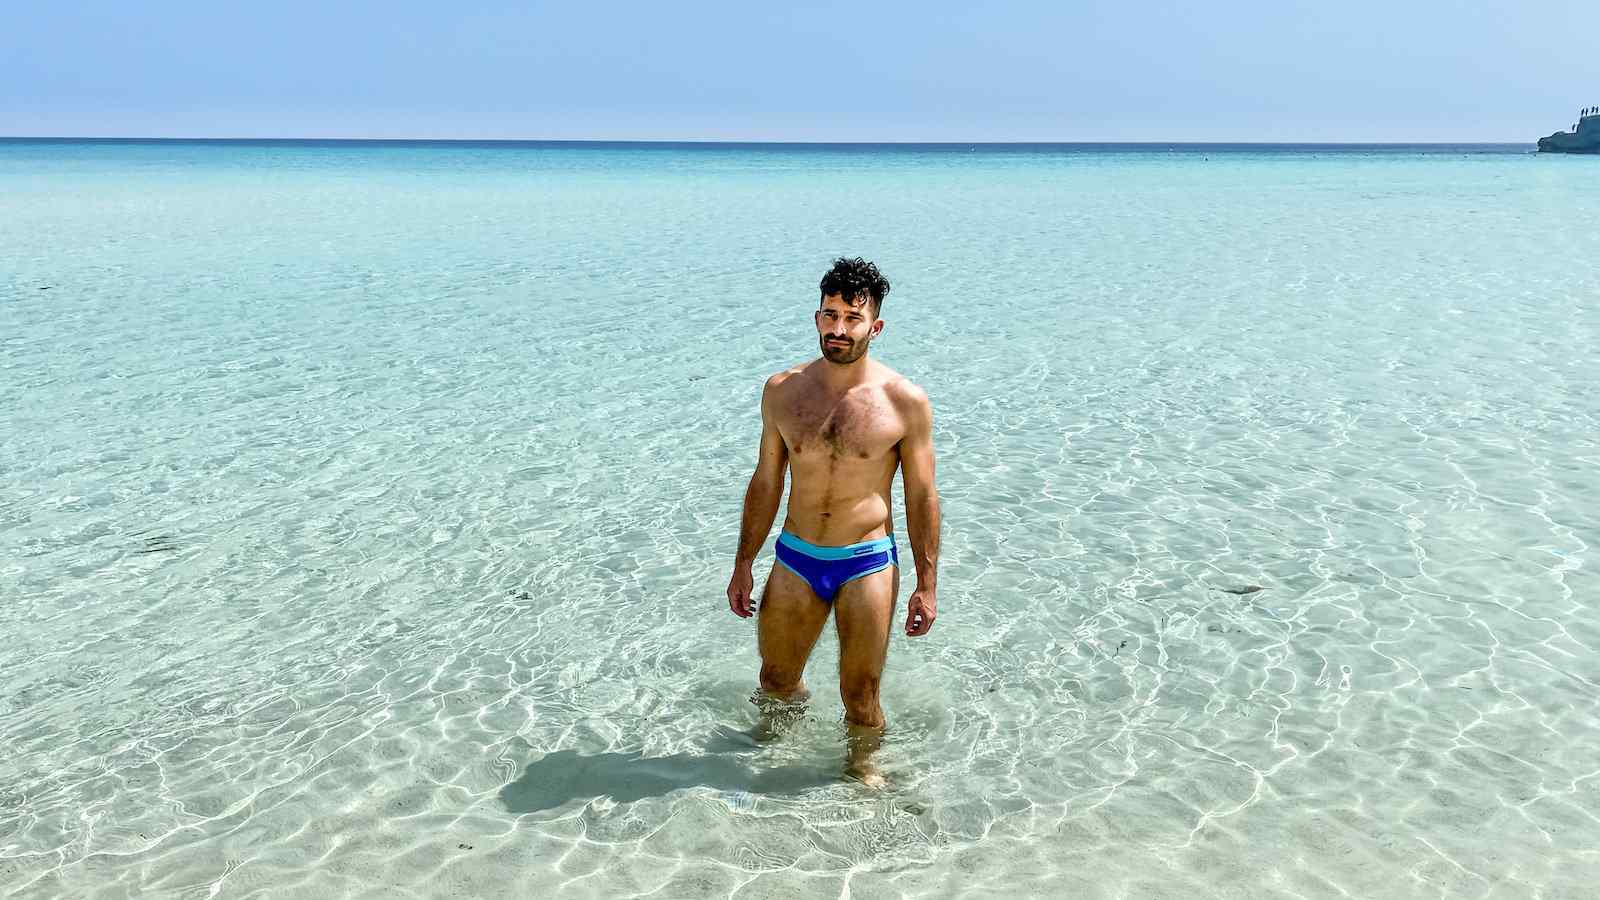 Cyprus has some stunning gay beaches to discover